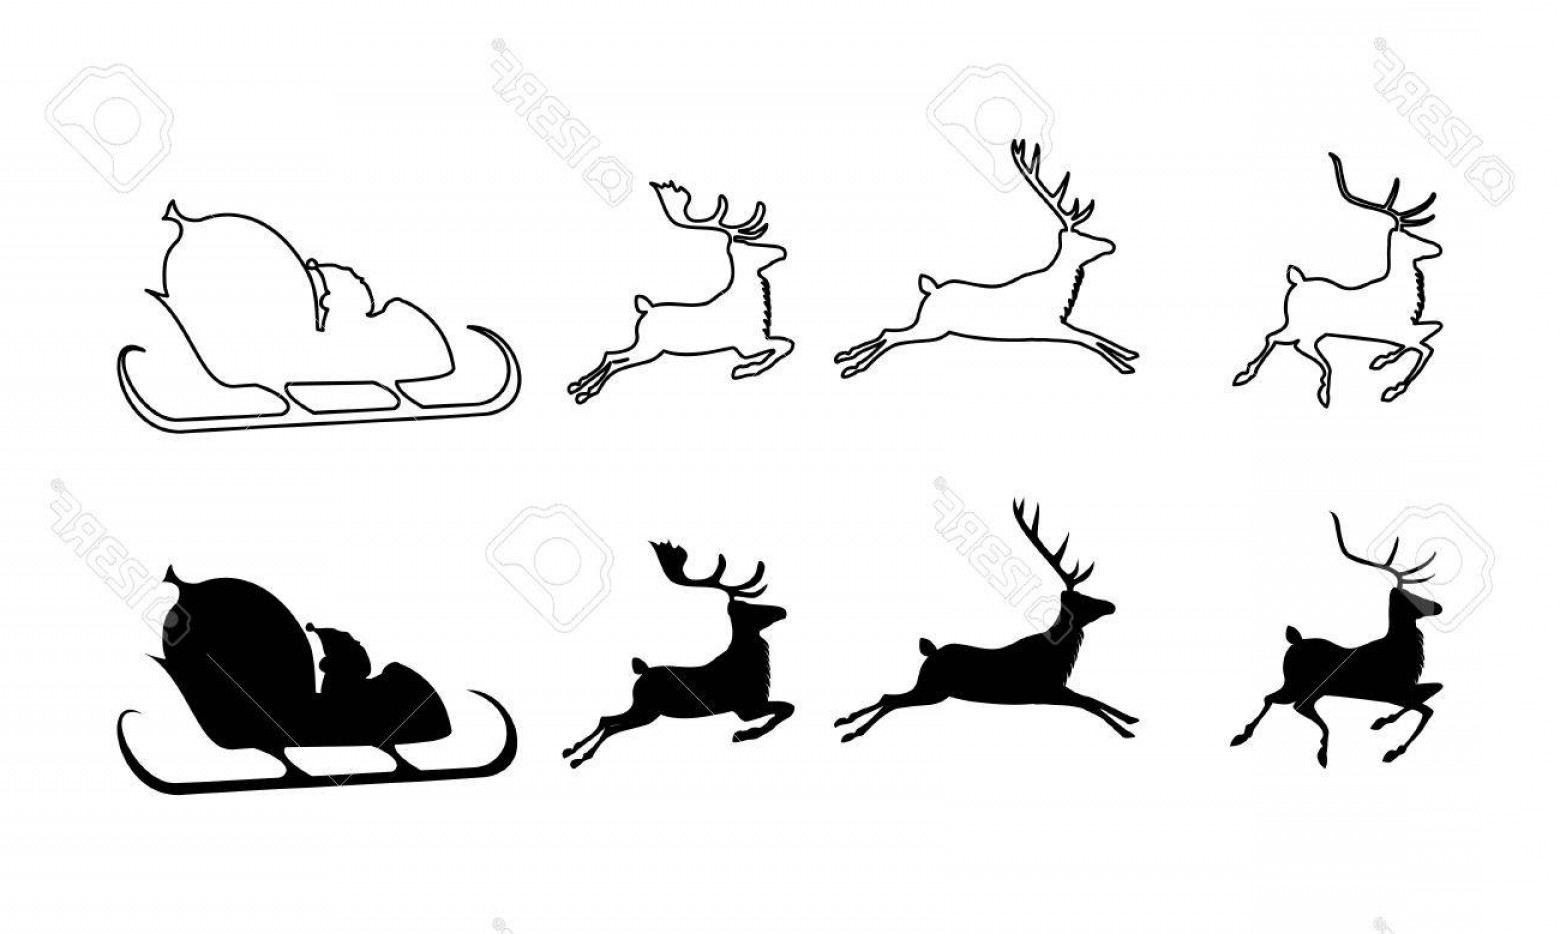 Black Santa Sleigh Vector: Photostock Vector Vector Illustration Of Santa Claus Silhouette With Sleigh And Three Reindeers